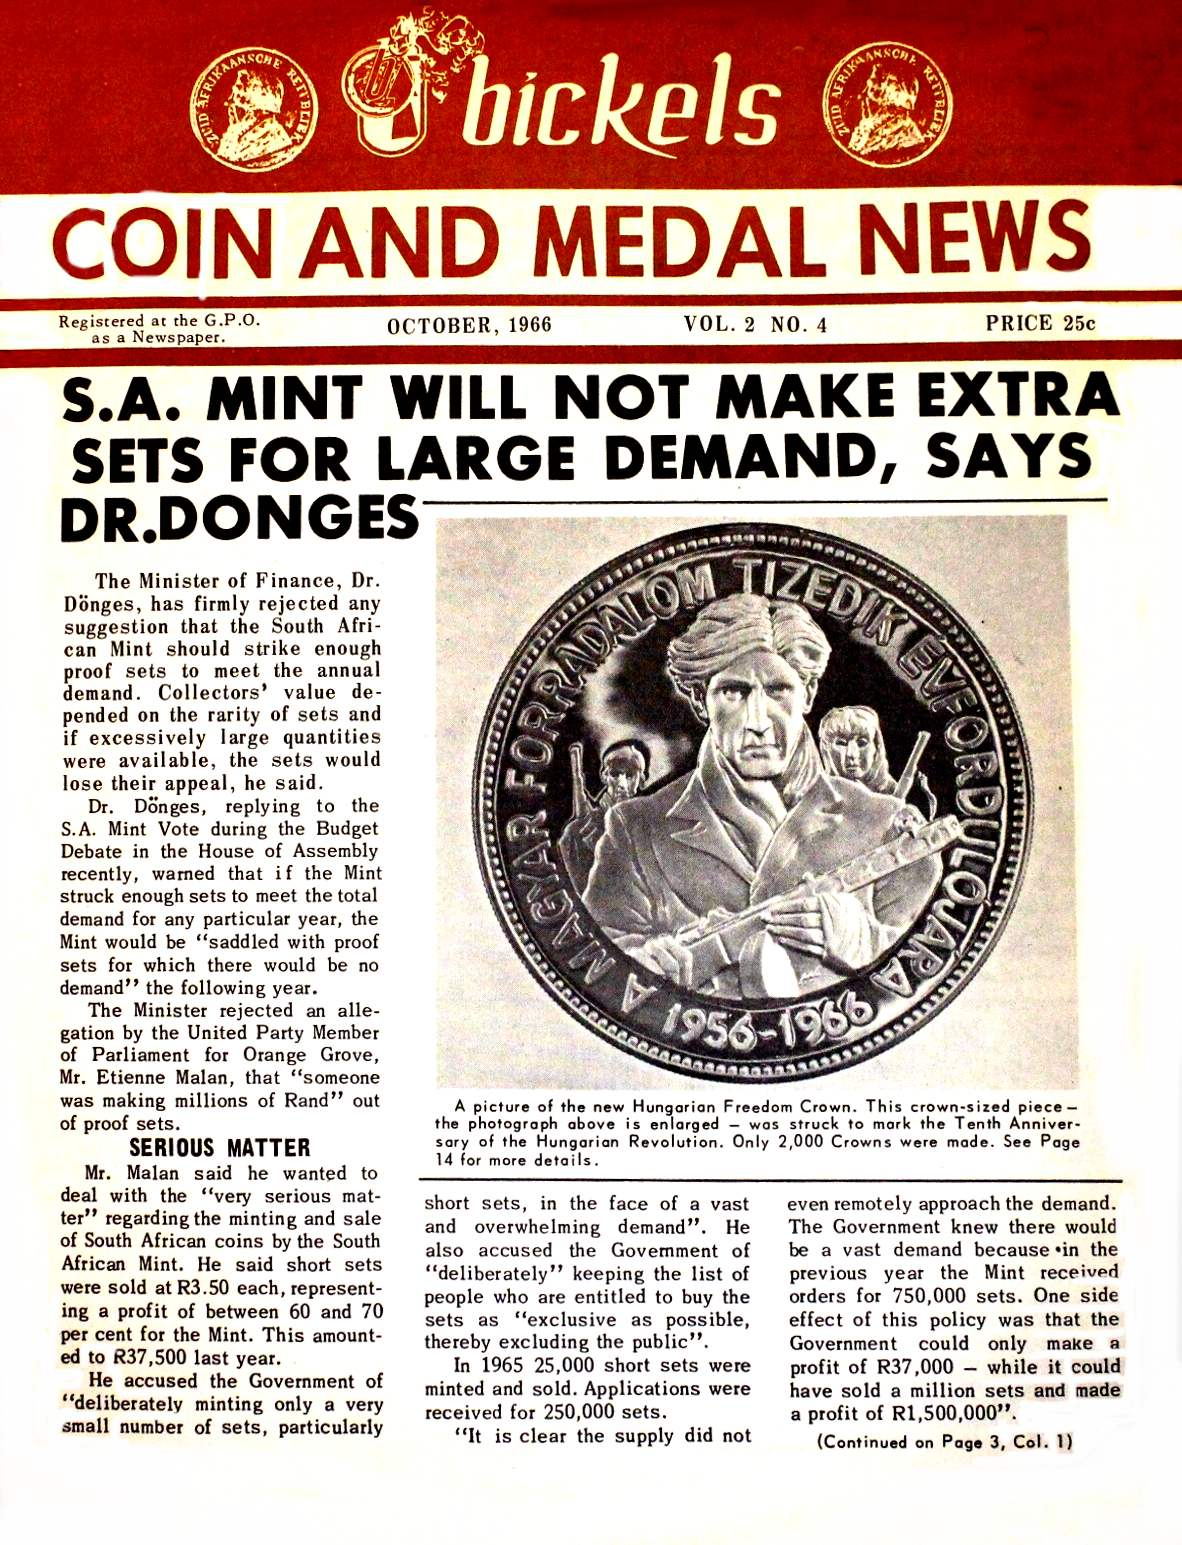 Bickels Coin & Medal News October 1966 Vol 2 No 4